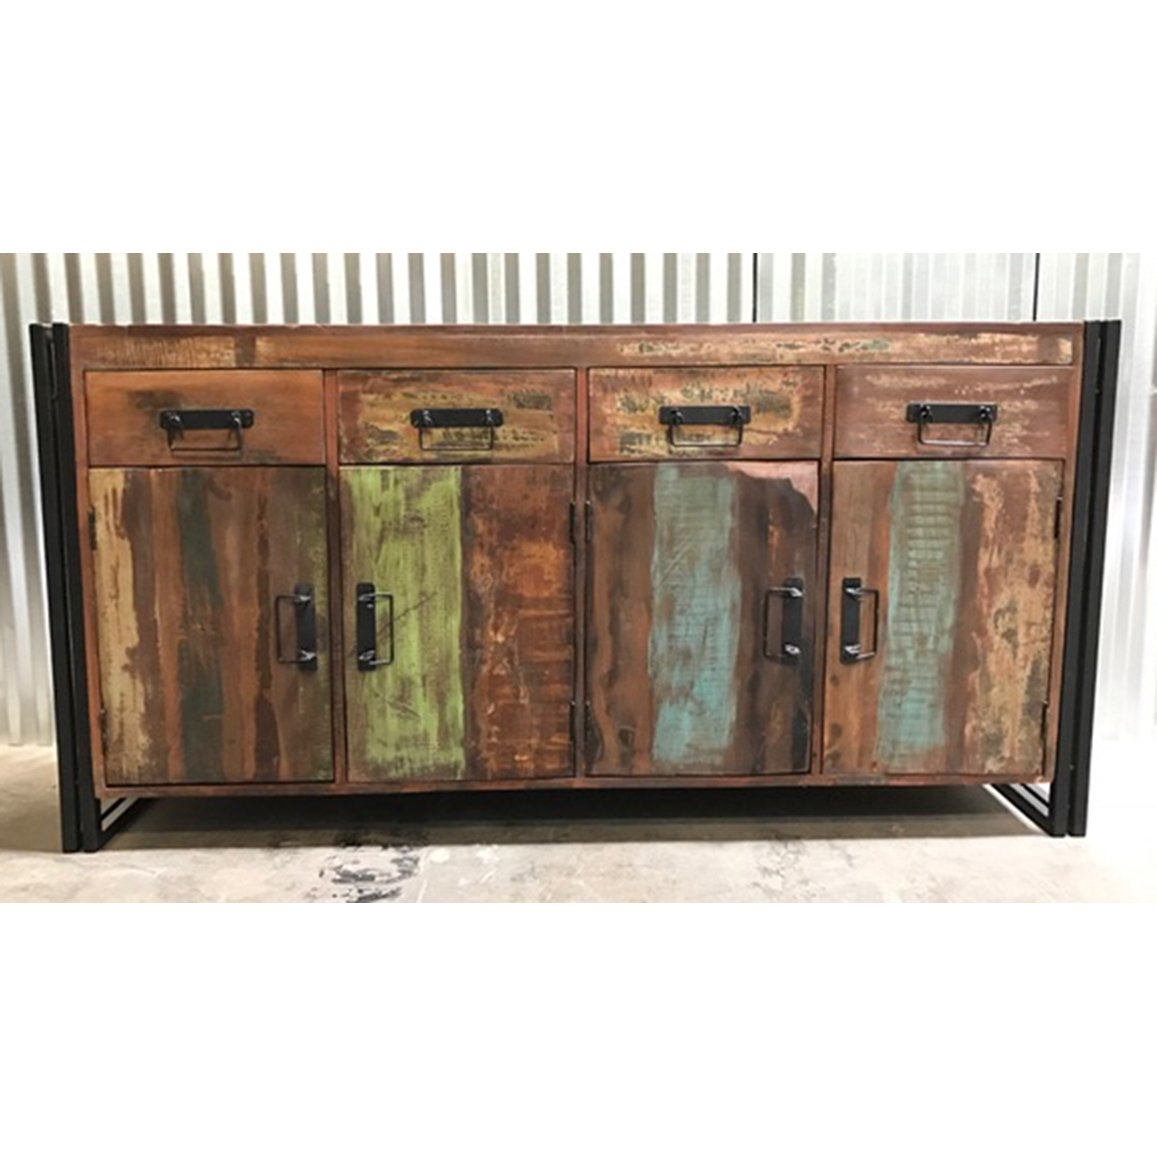 Shop Handmade Timbergirl Old Reclaimed Wood And Iron 4-Door 4-Drawer within Reclaimed Pine & Iron 4-Door Sideboards (Image 23 of 30)